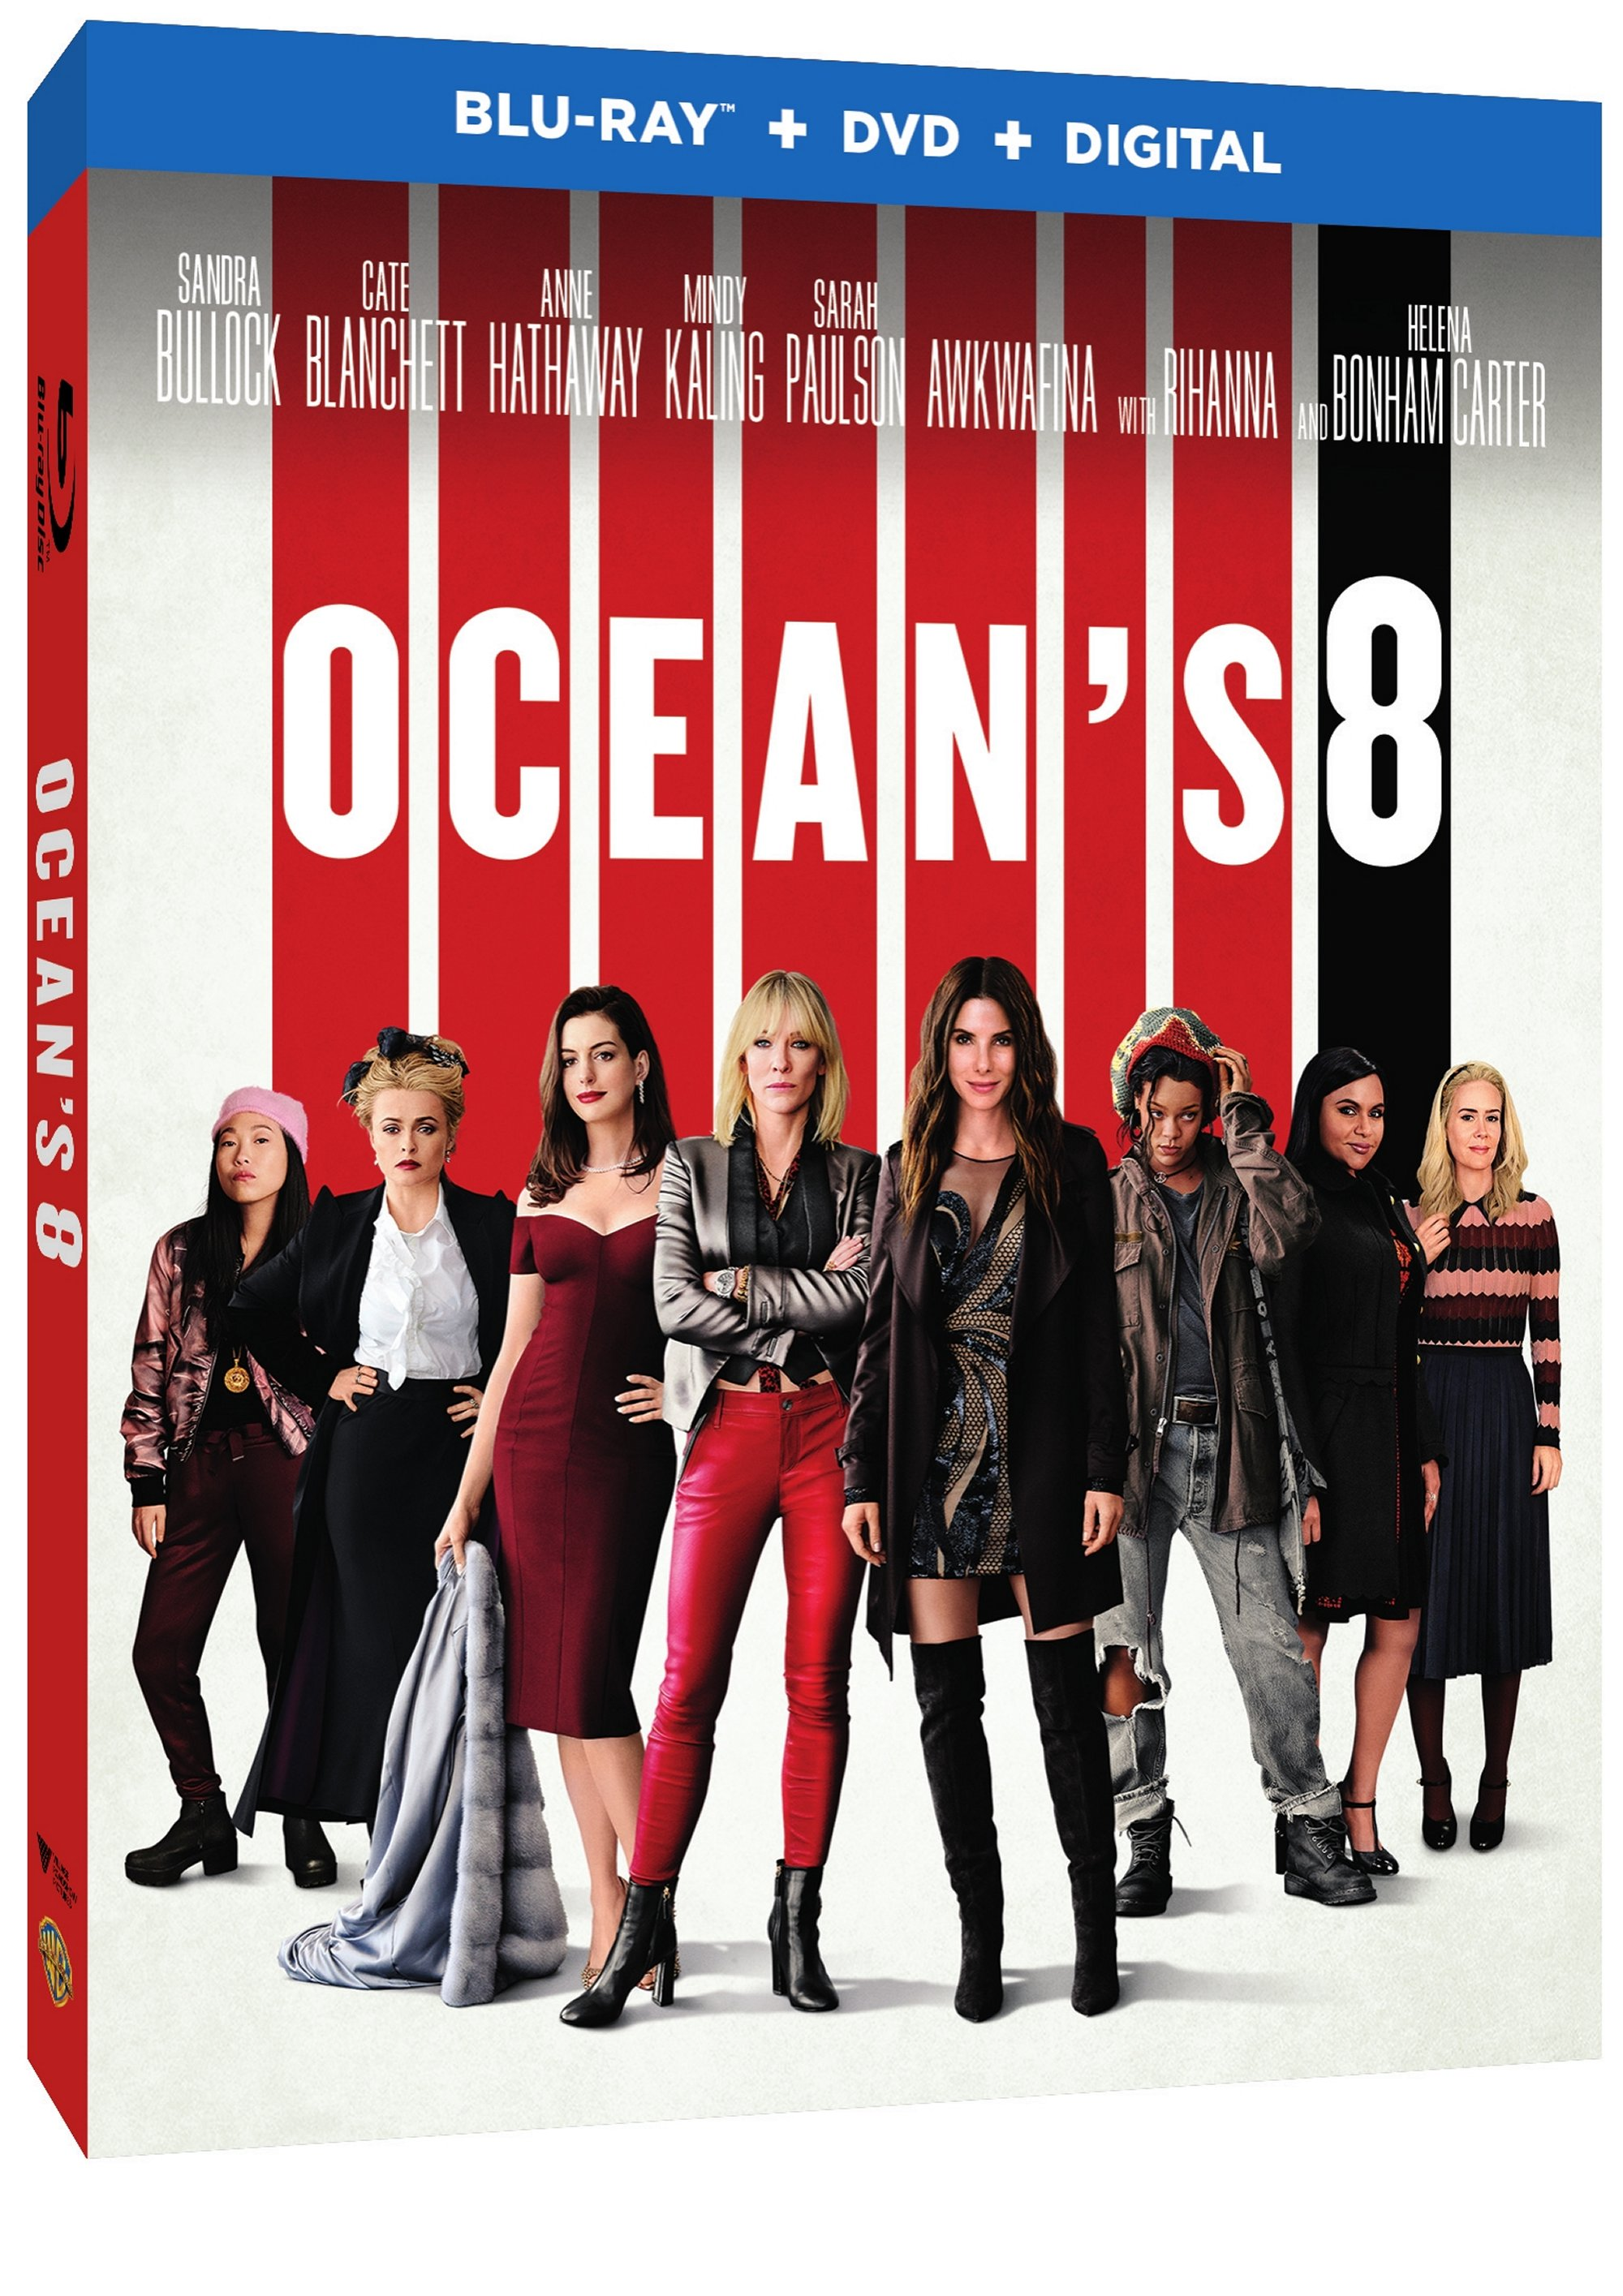 Ocean's 8 Blu-ray Review